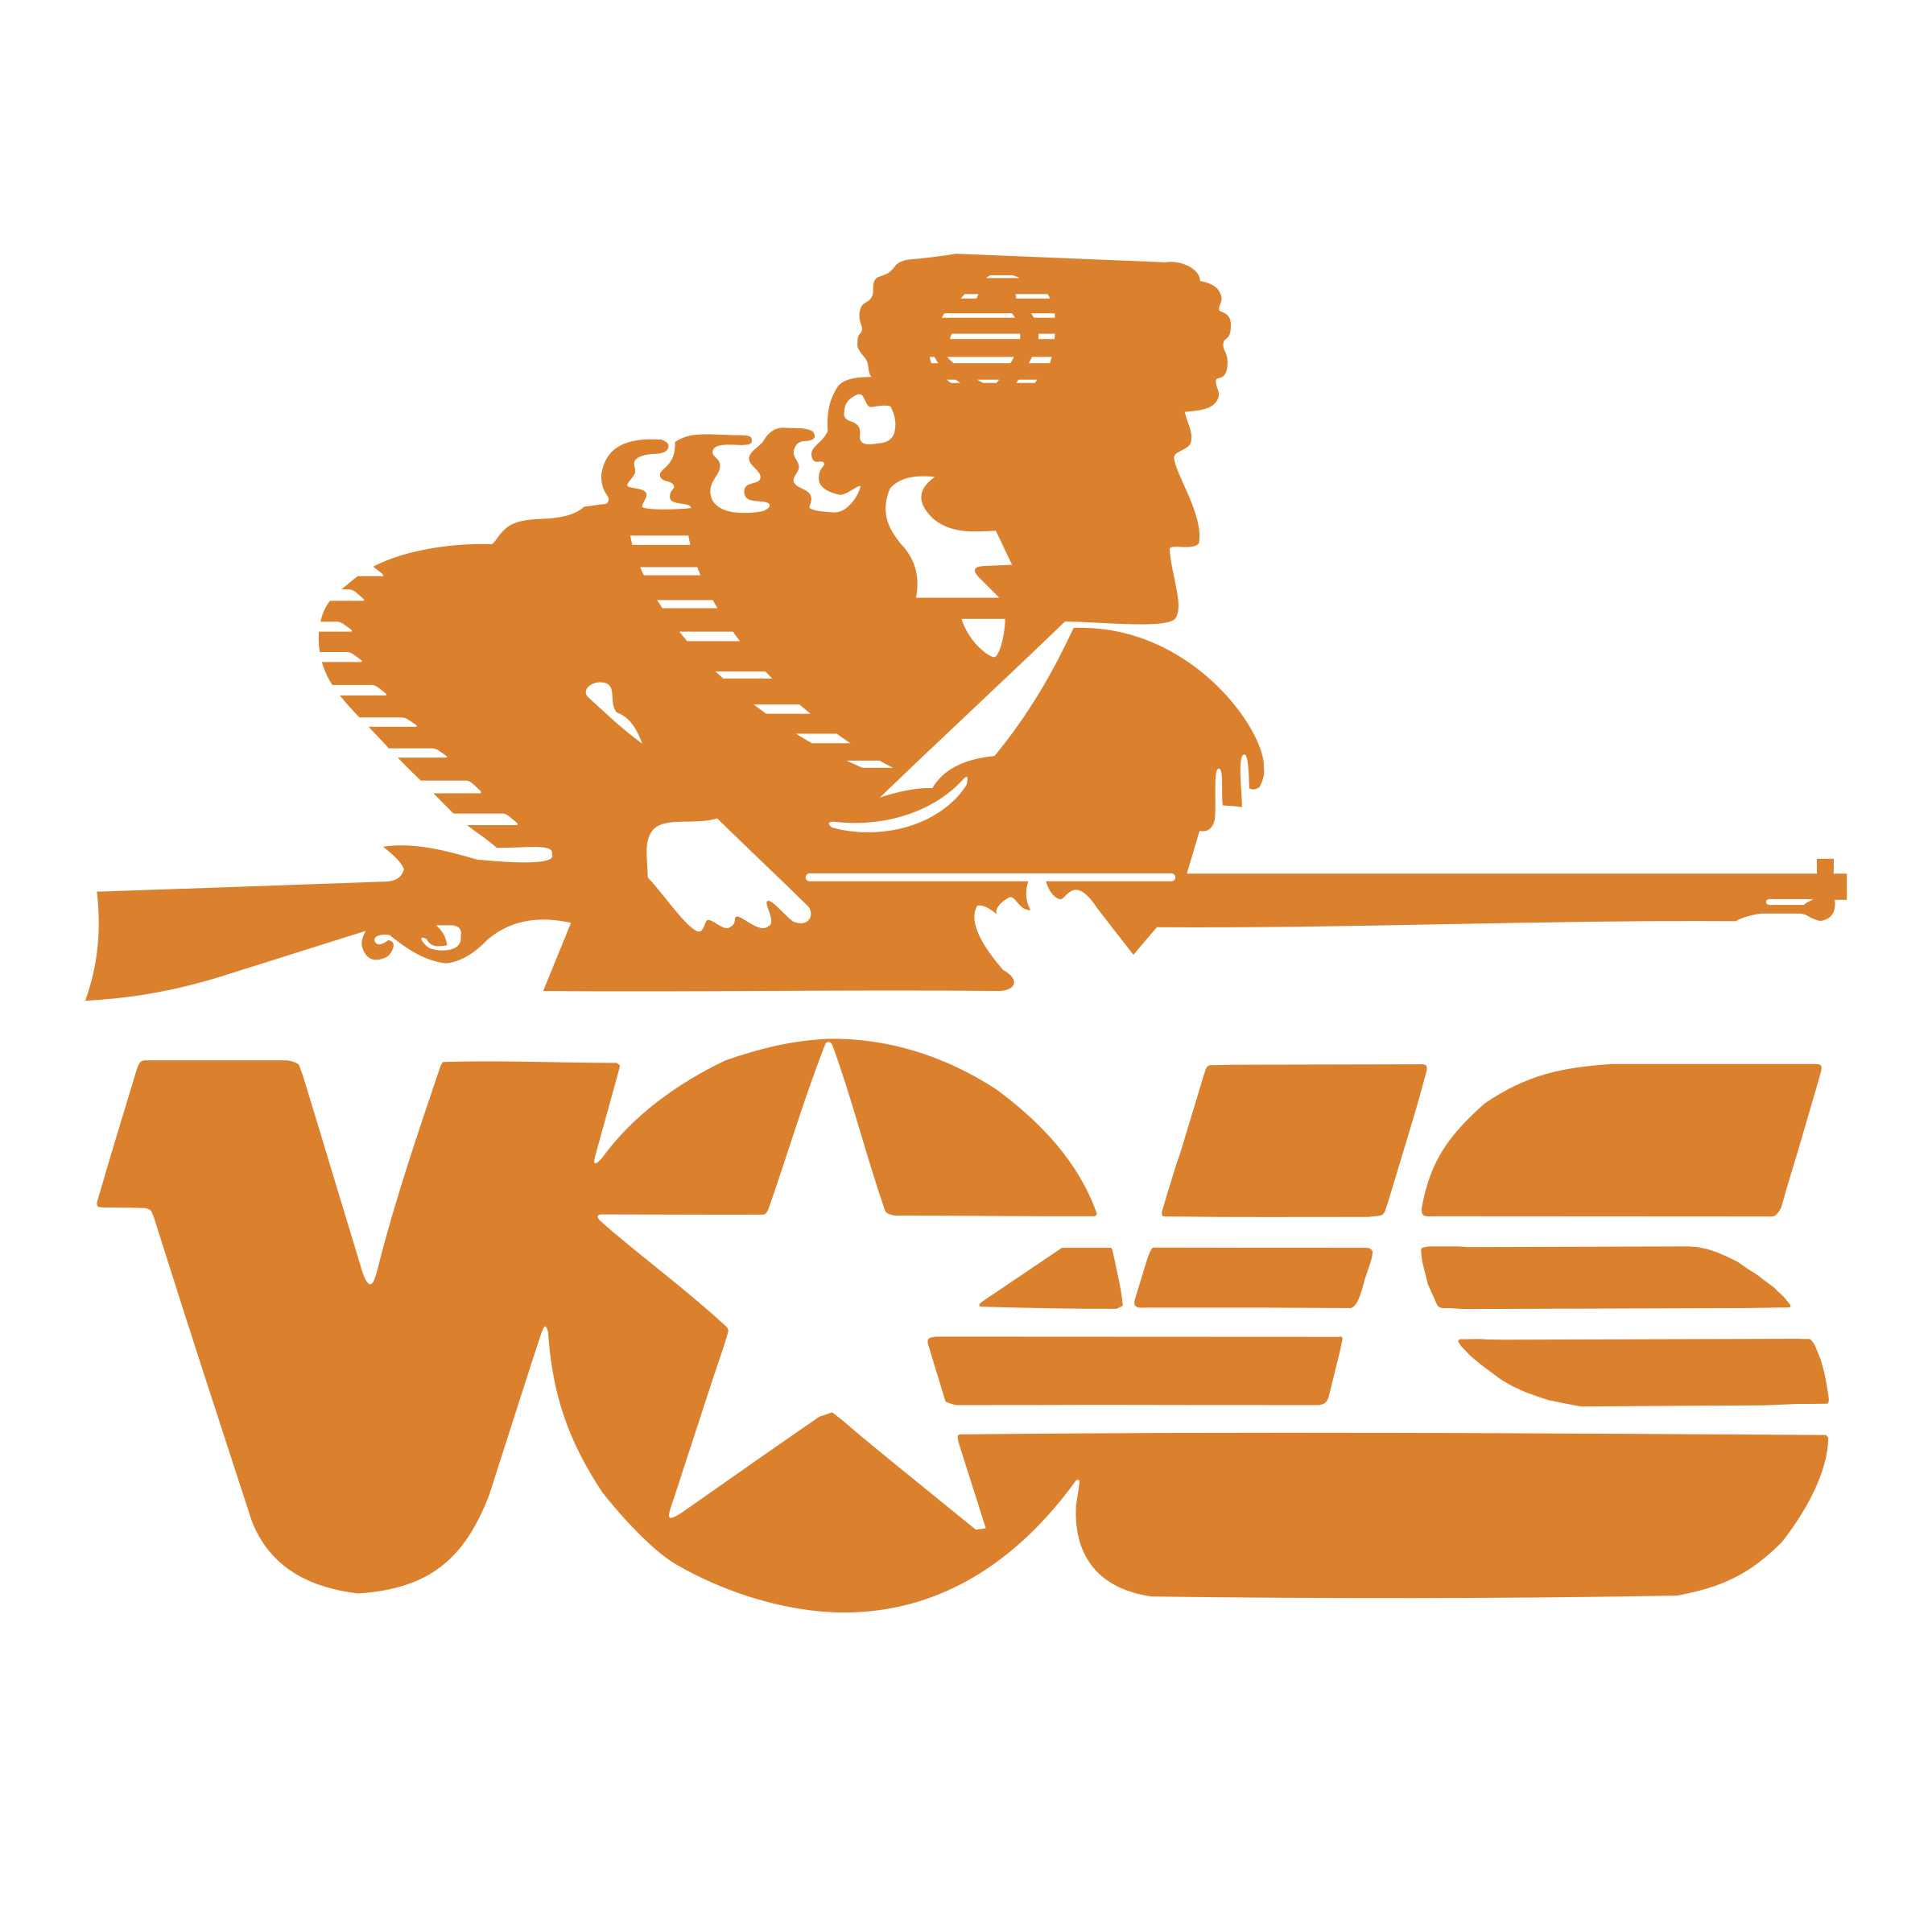 Tennessee Vols Logo PNG Transparent & SVG Vector.